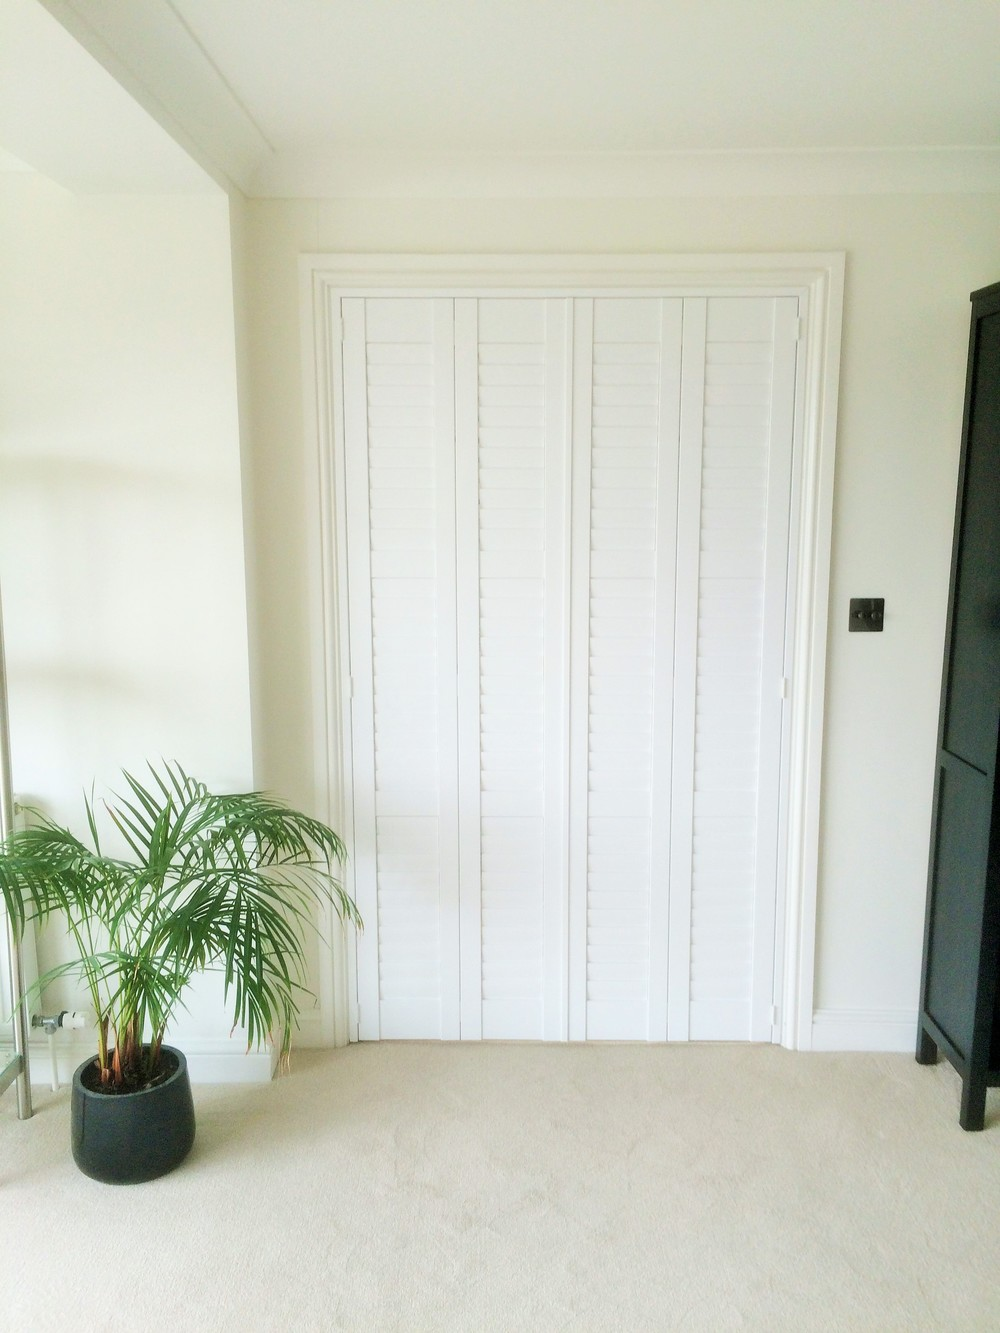 Plantation shutters to split open plan areas